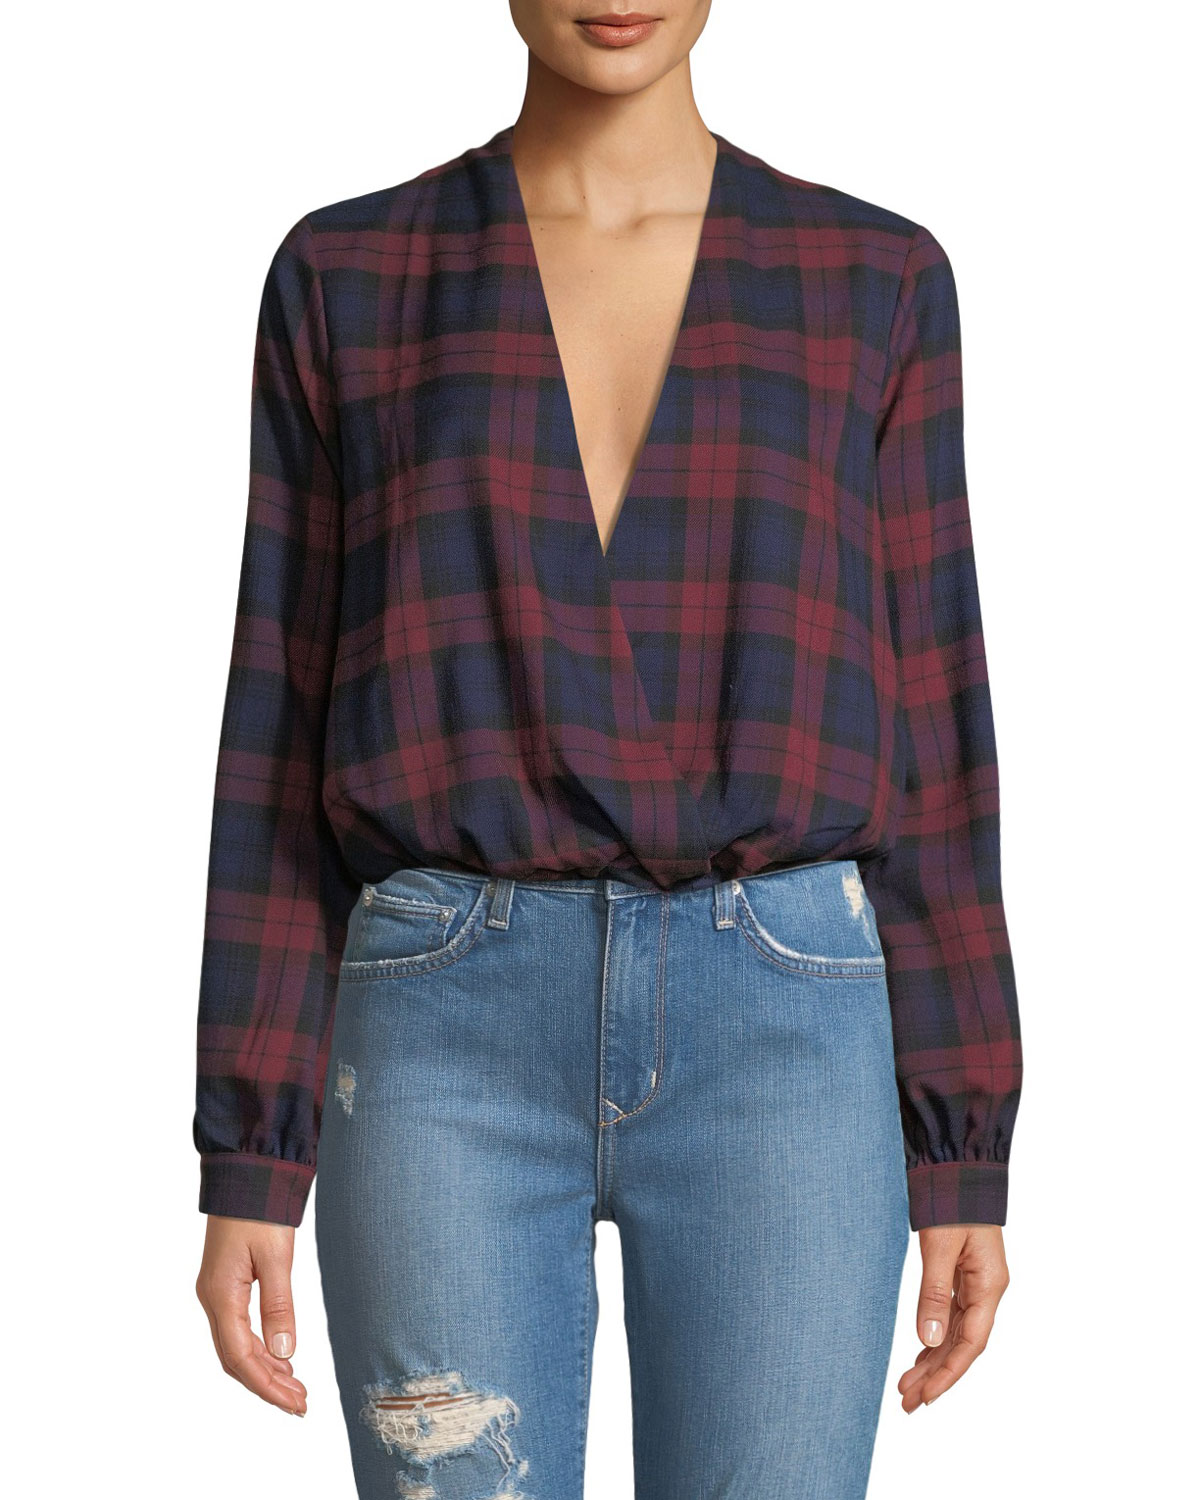 LOVERS+FRIENDS Whisper Plaid Chiffon Cropped Top in Red/Black